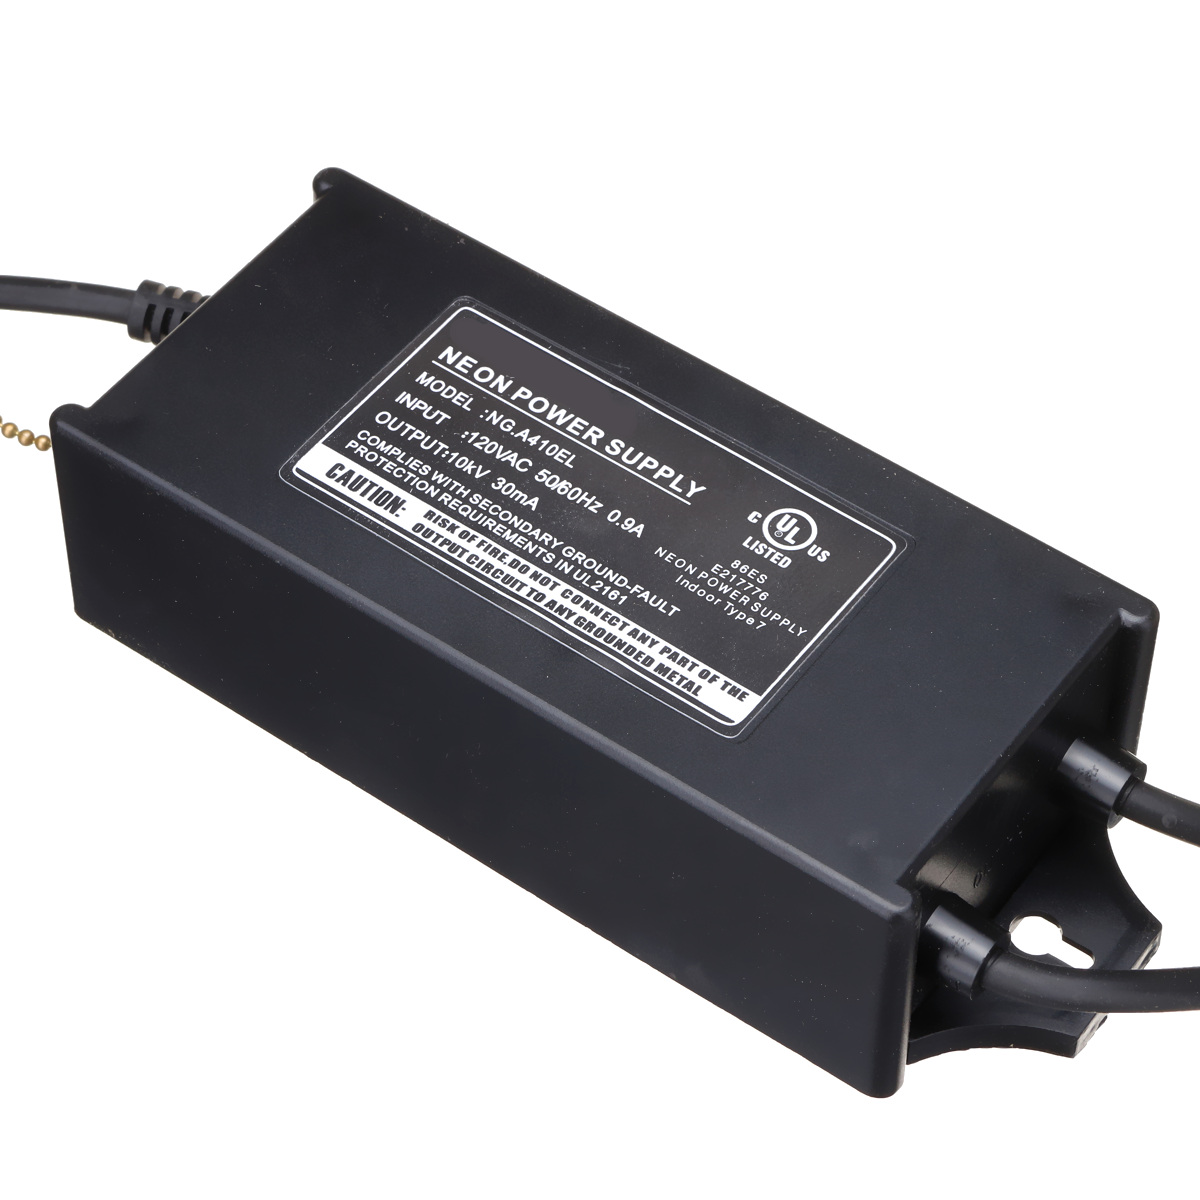 110V Neon Sign Transformer 10KV 10000V 30mA 100W Electronic Power Supply